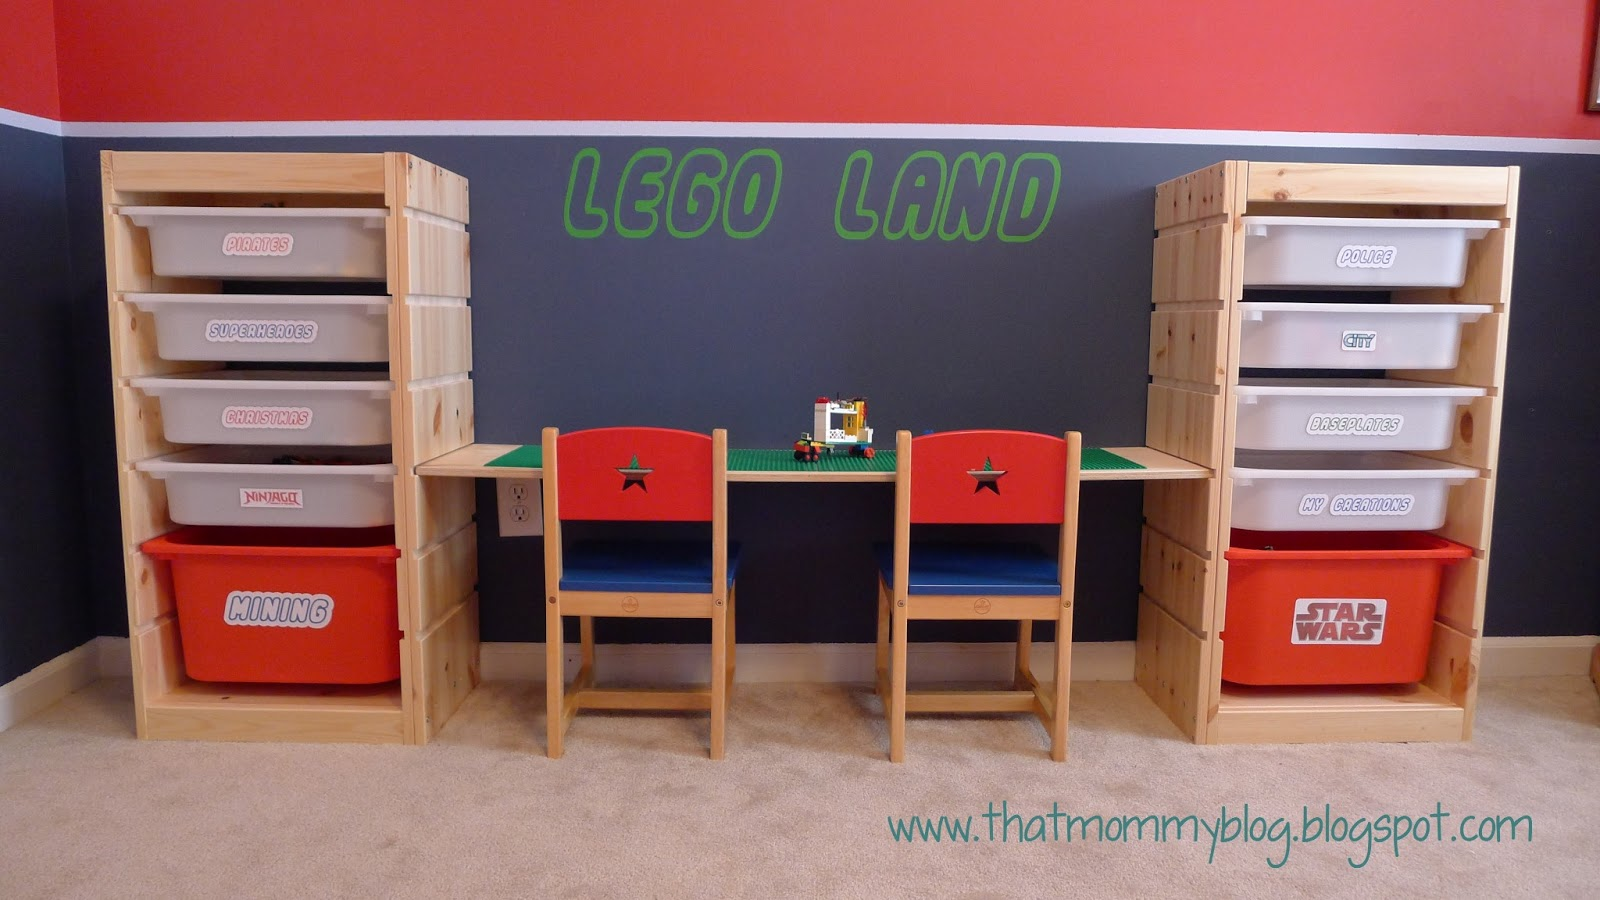 TROFAST LEGO Storage Table 1600 x 900